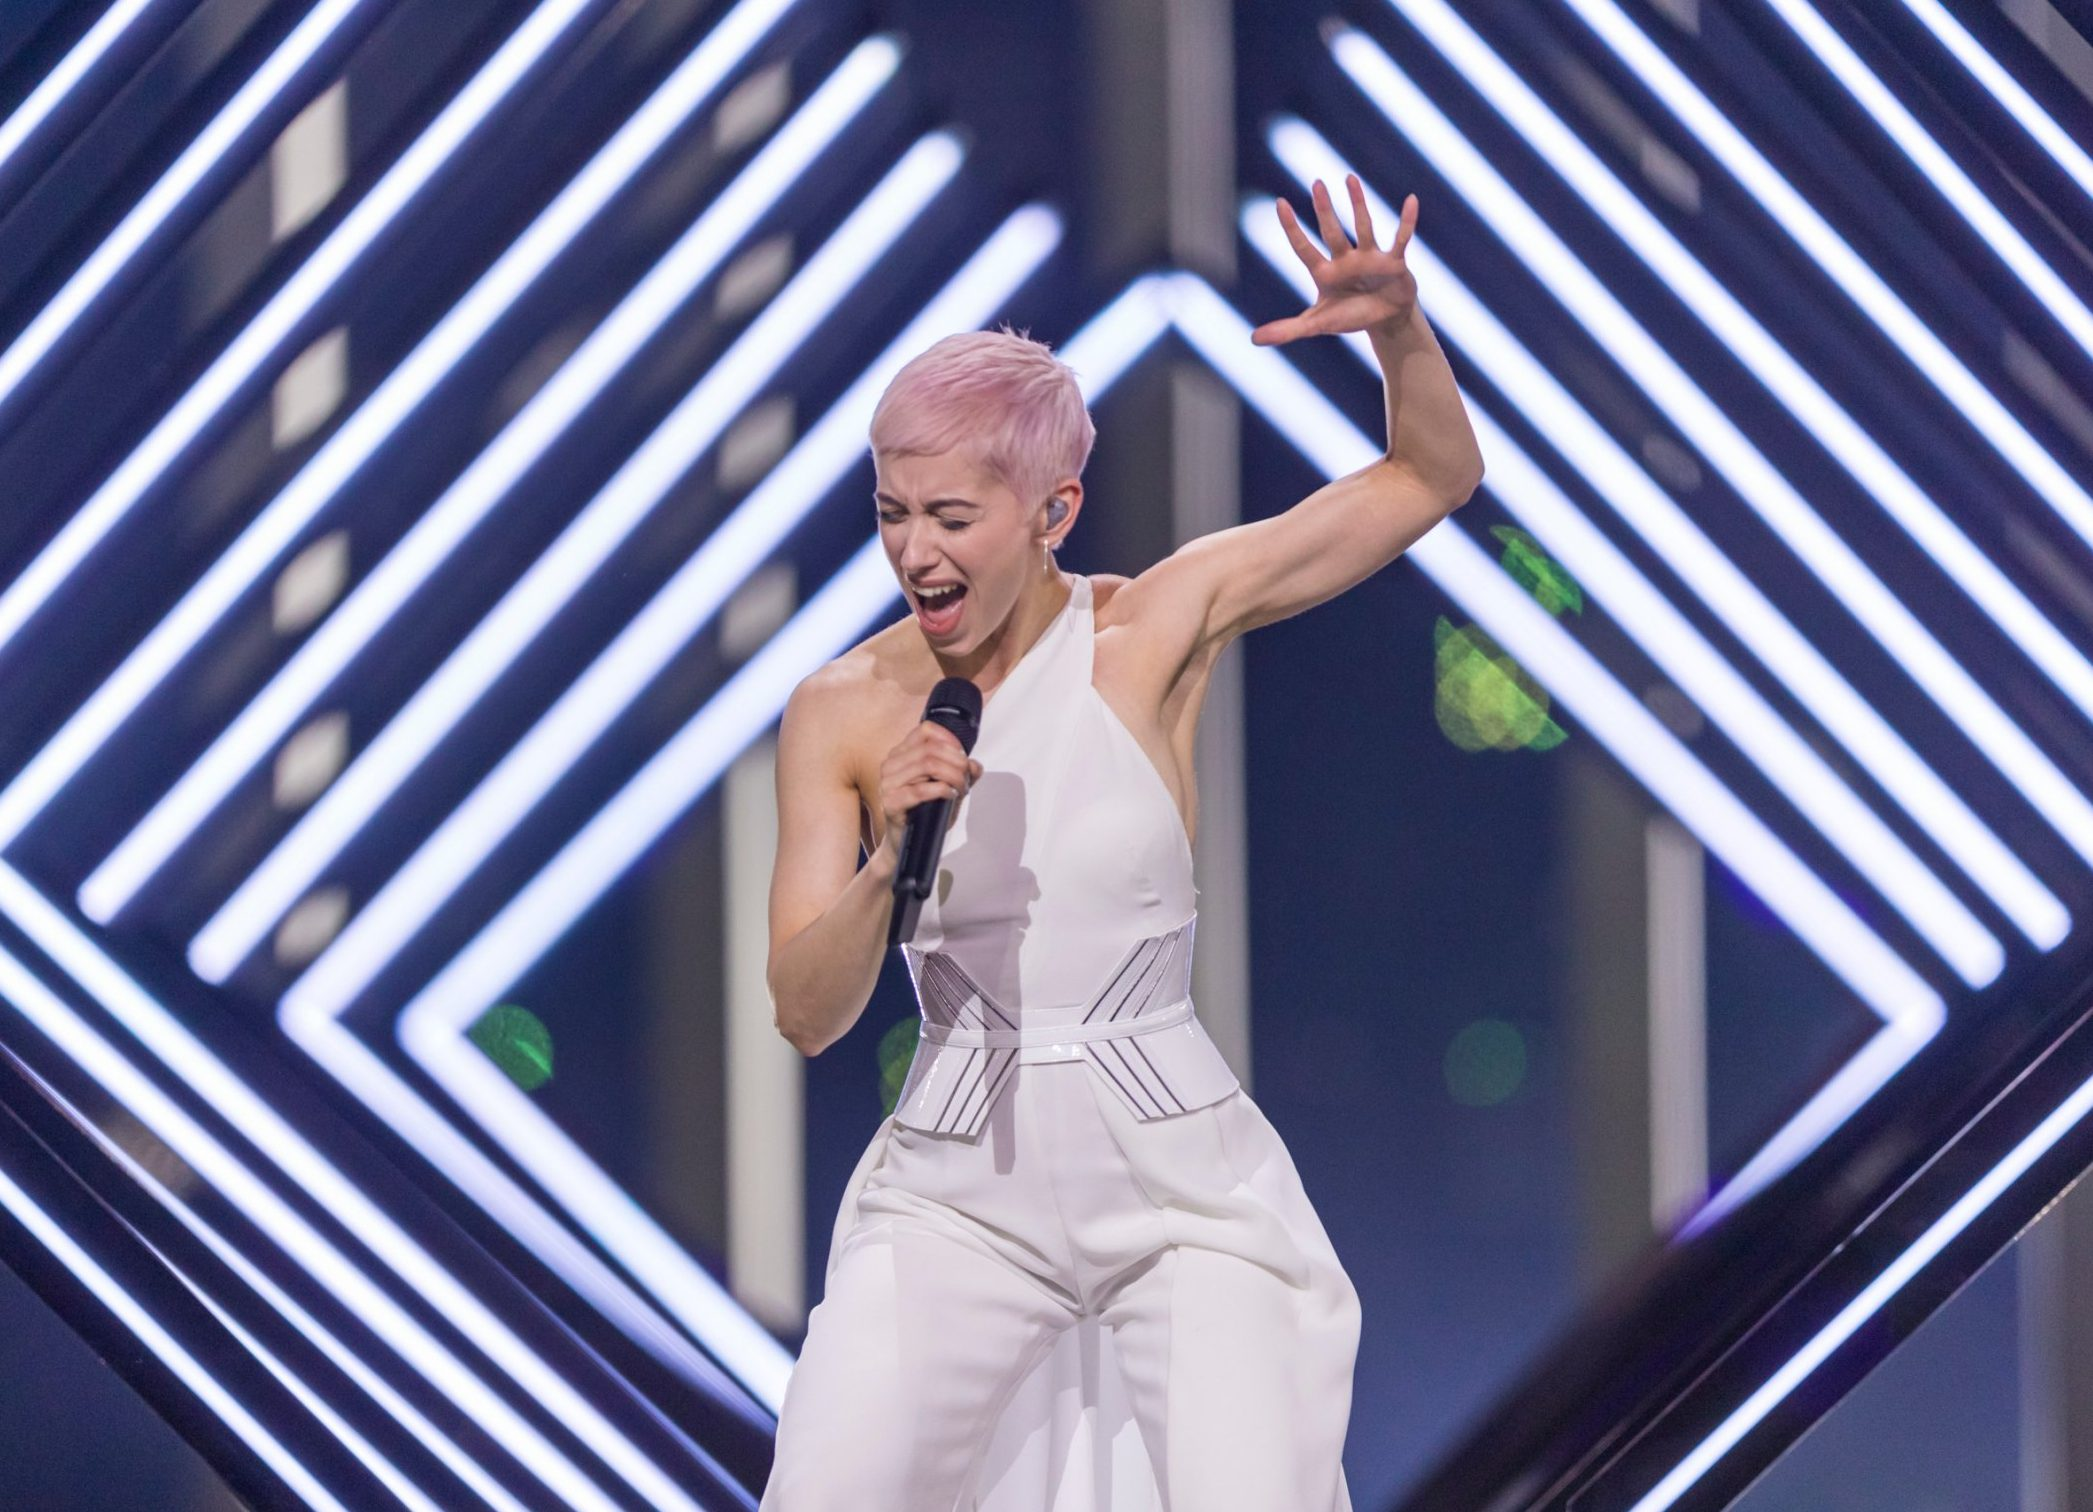 Mandatory Credit: Photo by Rolf Klatt/REX/Shutterstock (9668881cb) SuRie of Greatbritain is performing her song 'Storm' during a dress rehearsal for the grand final of the Eurovision Song Contest Eurovision Song Contest Grand Final dress rehearsal, Lisbon, Portugal - 11 May 2018